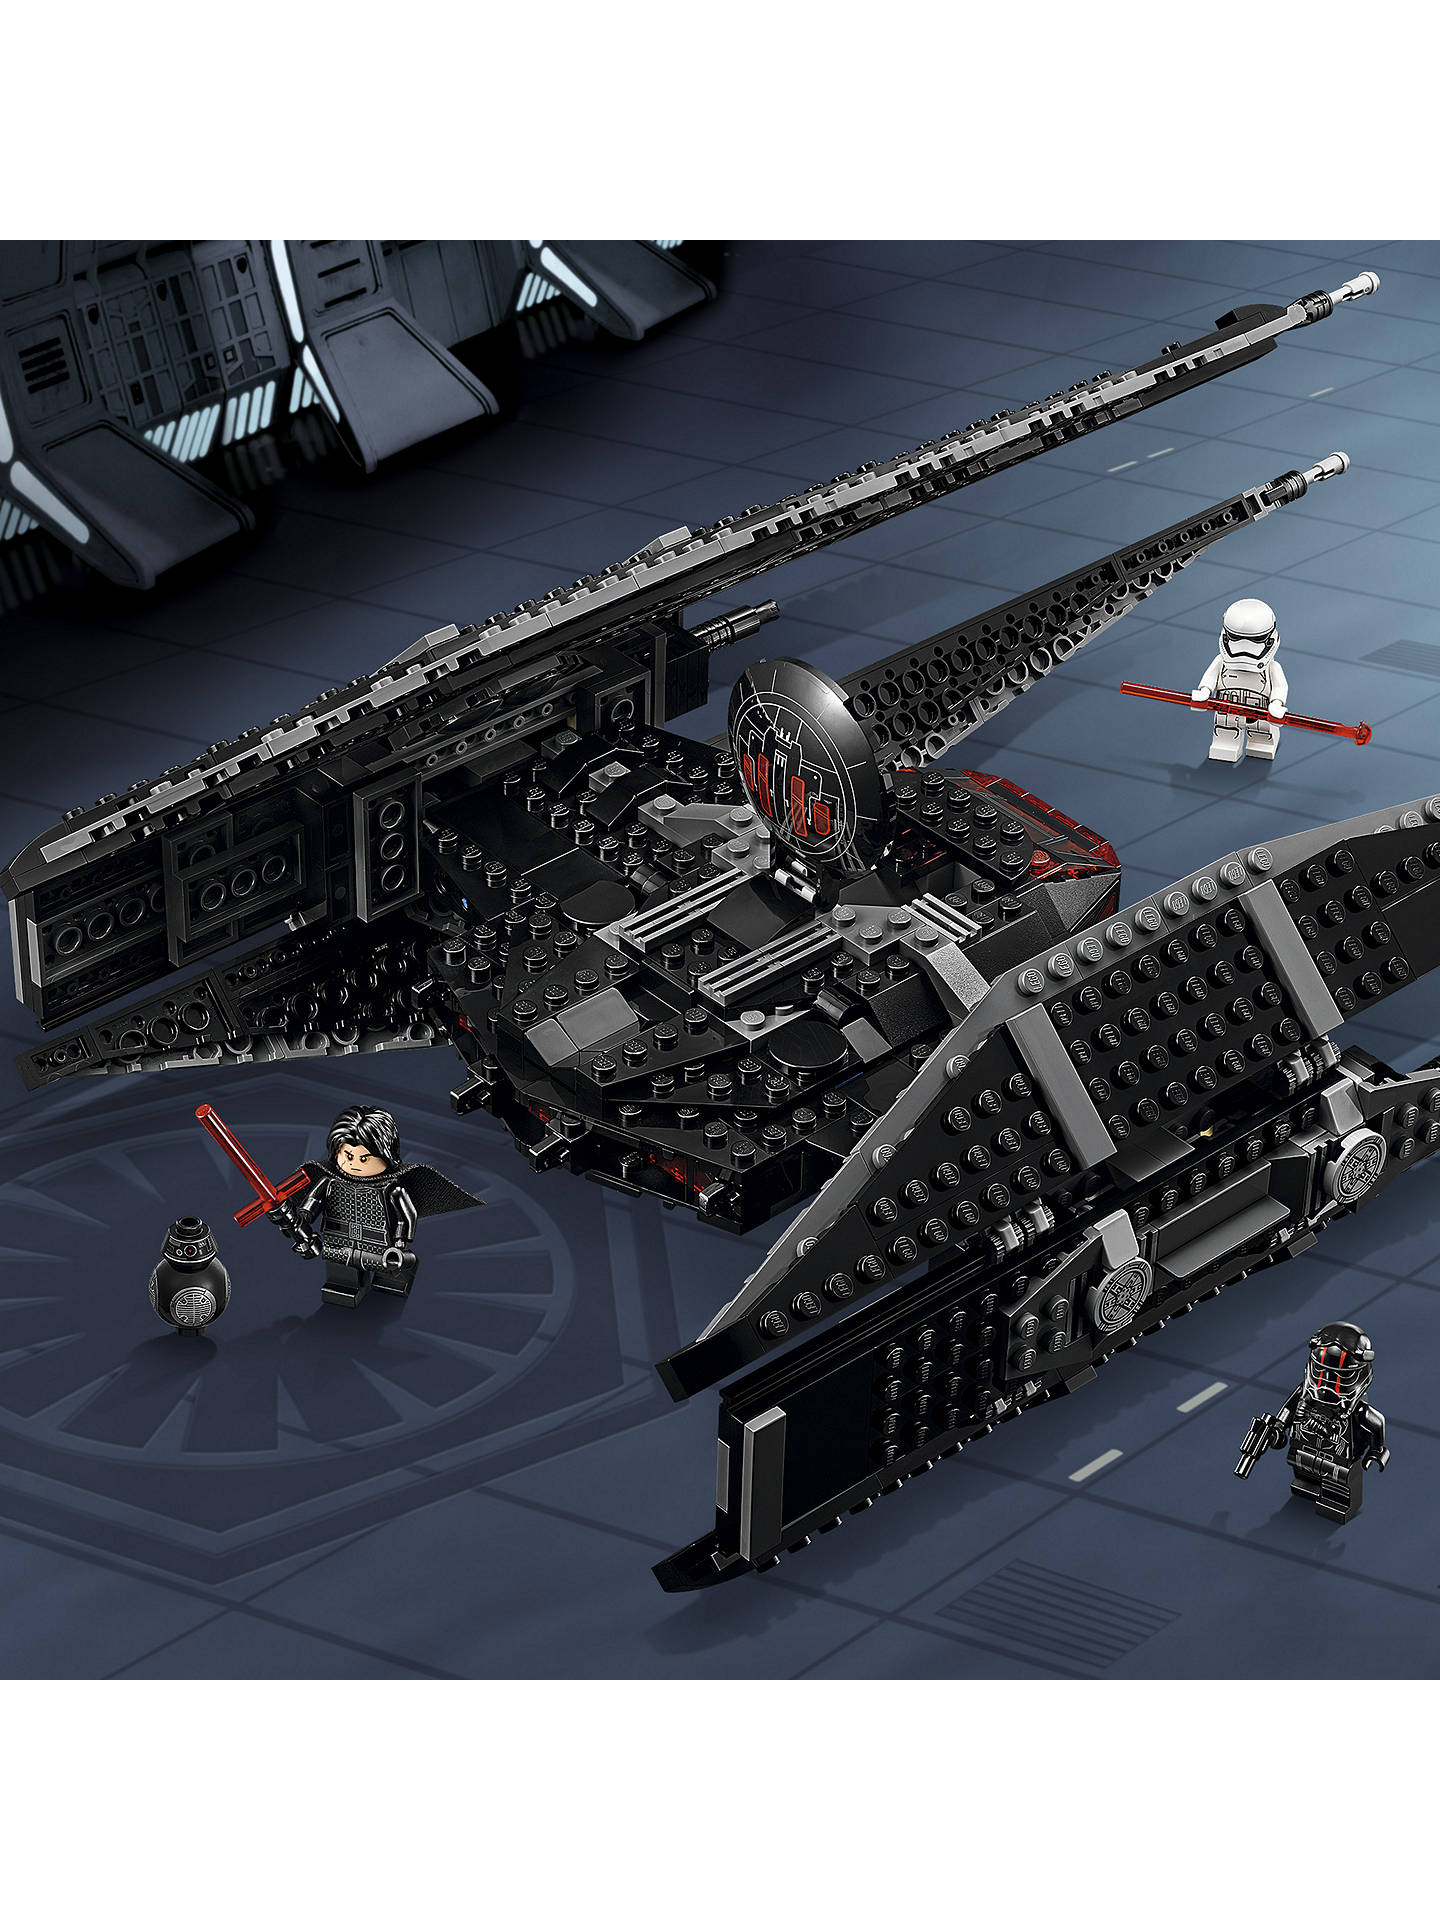 BuyLEGO Star Wars The Last Jedi 75179 Kylo Ren's TIE Fighter Online at johnlewis.com